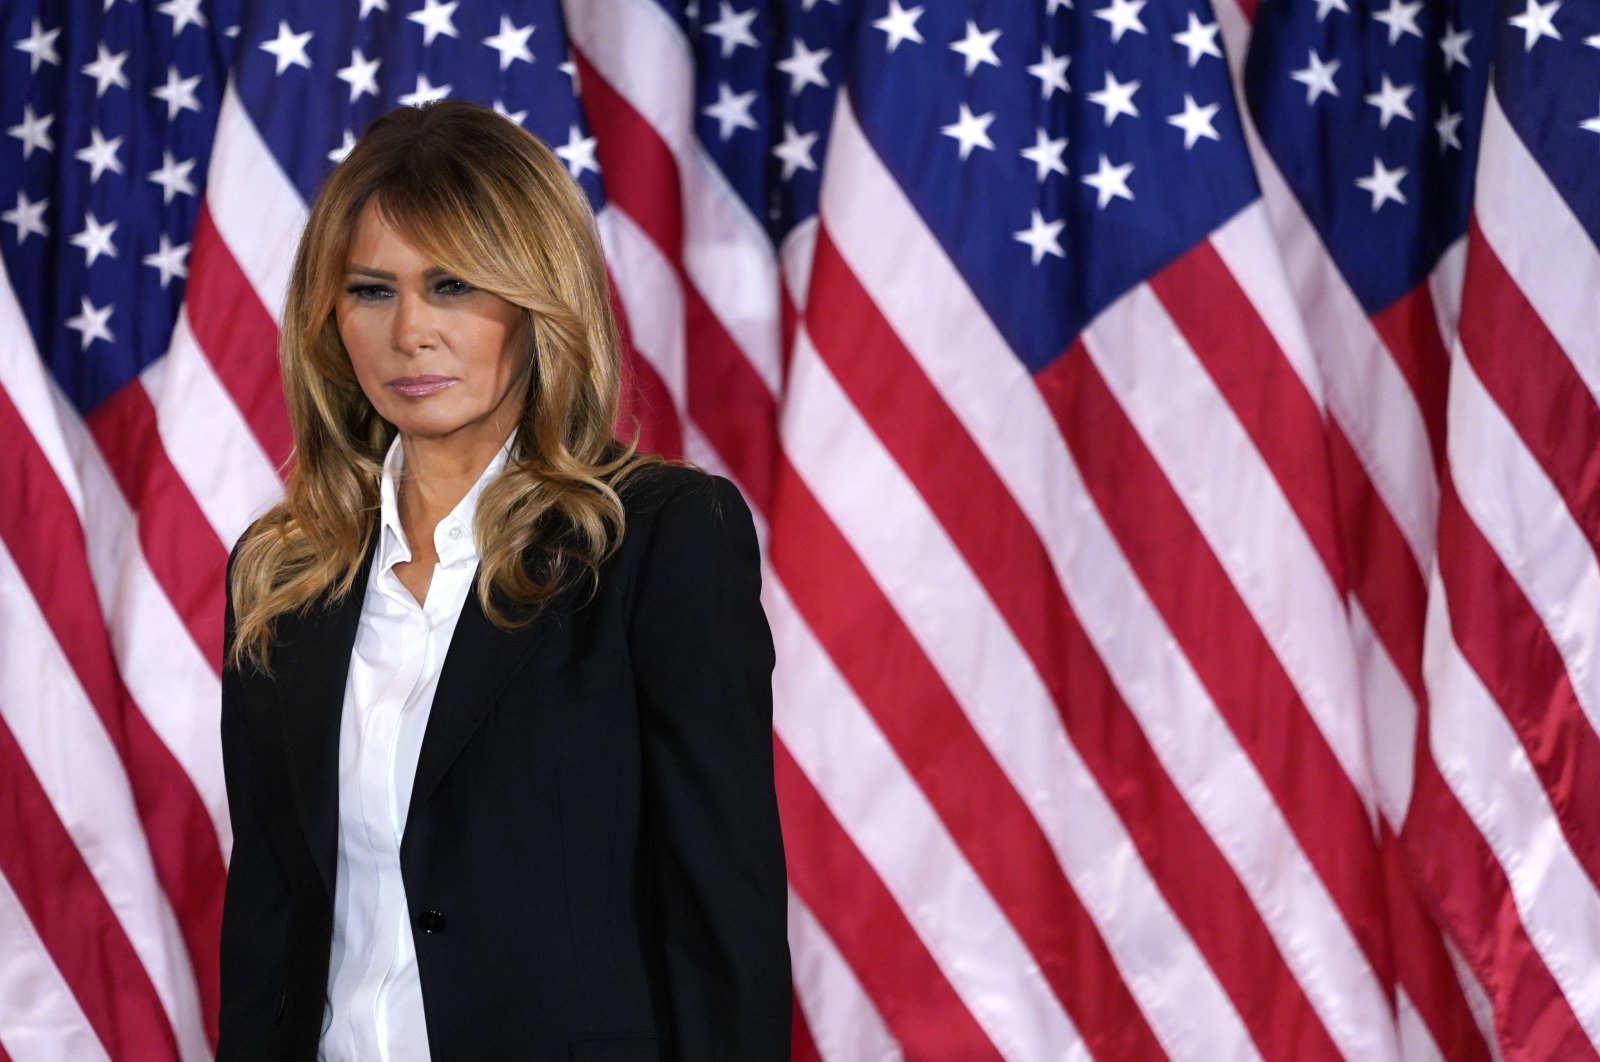 First lady Melania Trump looks on as U.S. President Trump speaks on the election night at an event at the White House in Washington D.C., U.S., Nov. 4, 2020. (EPA-EFE Photo)